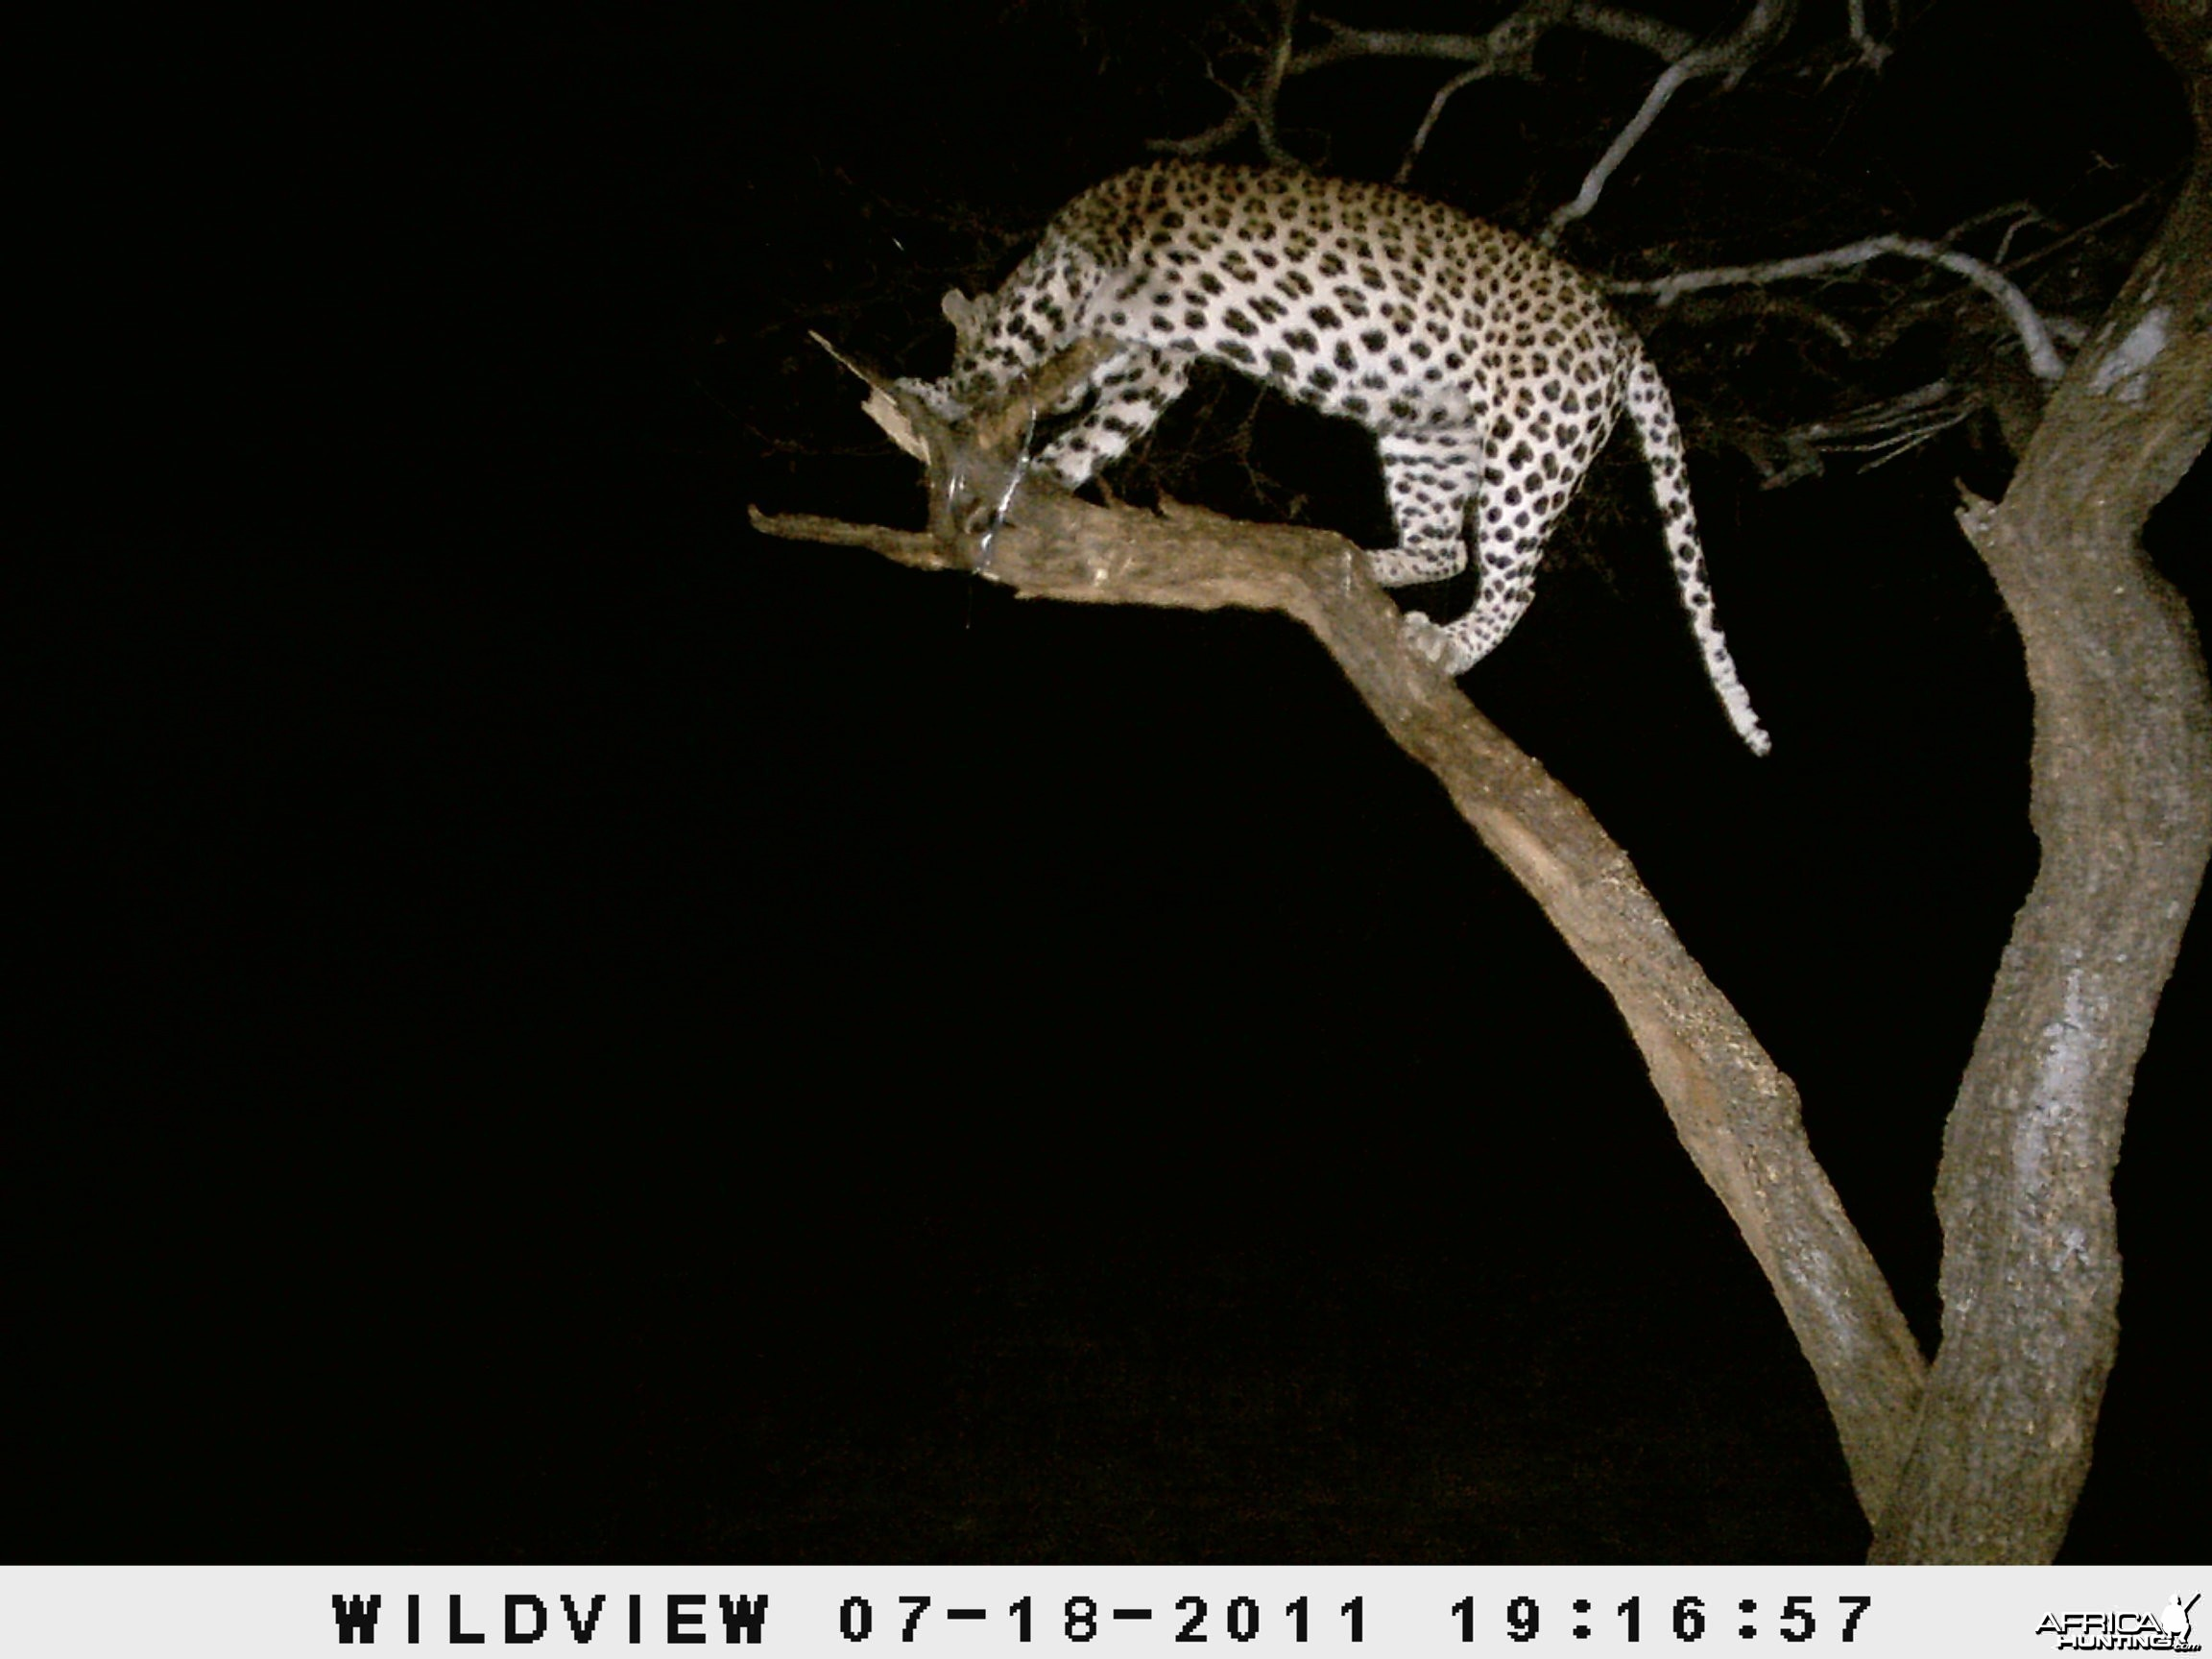 Leopard Namibia